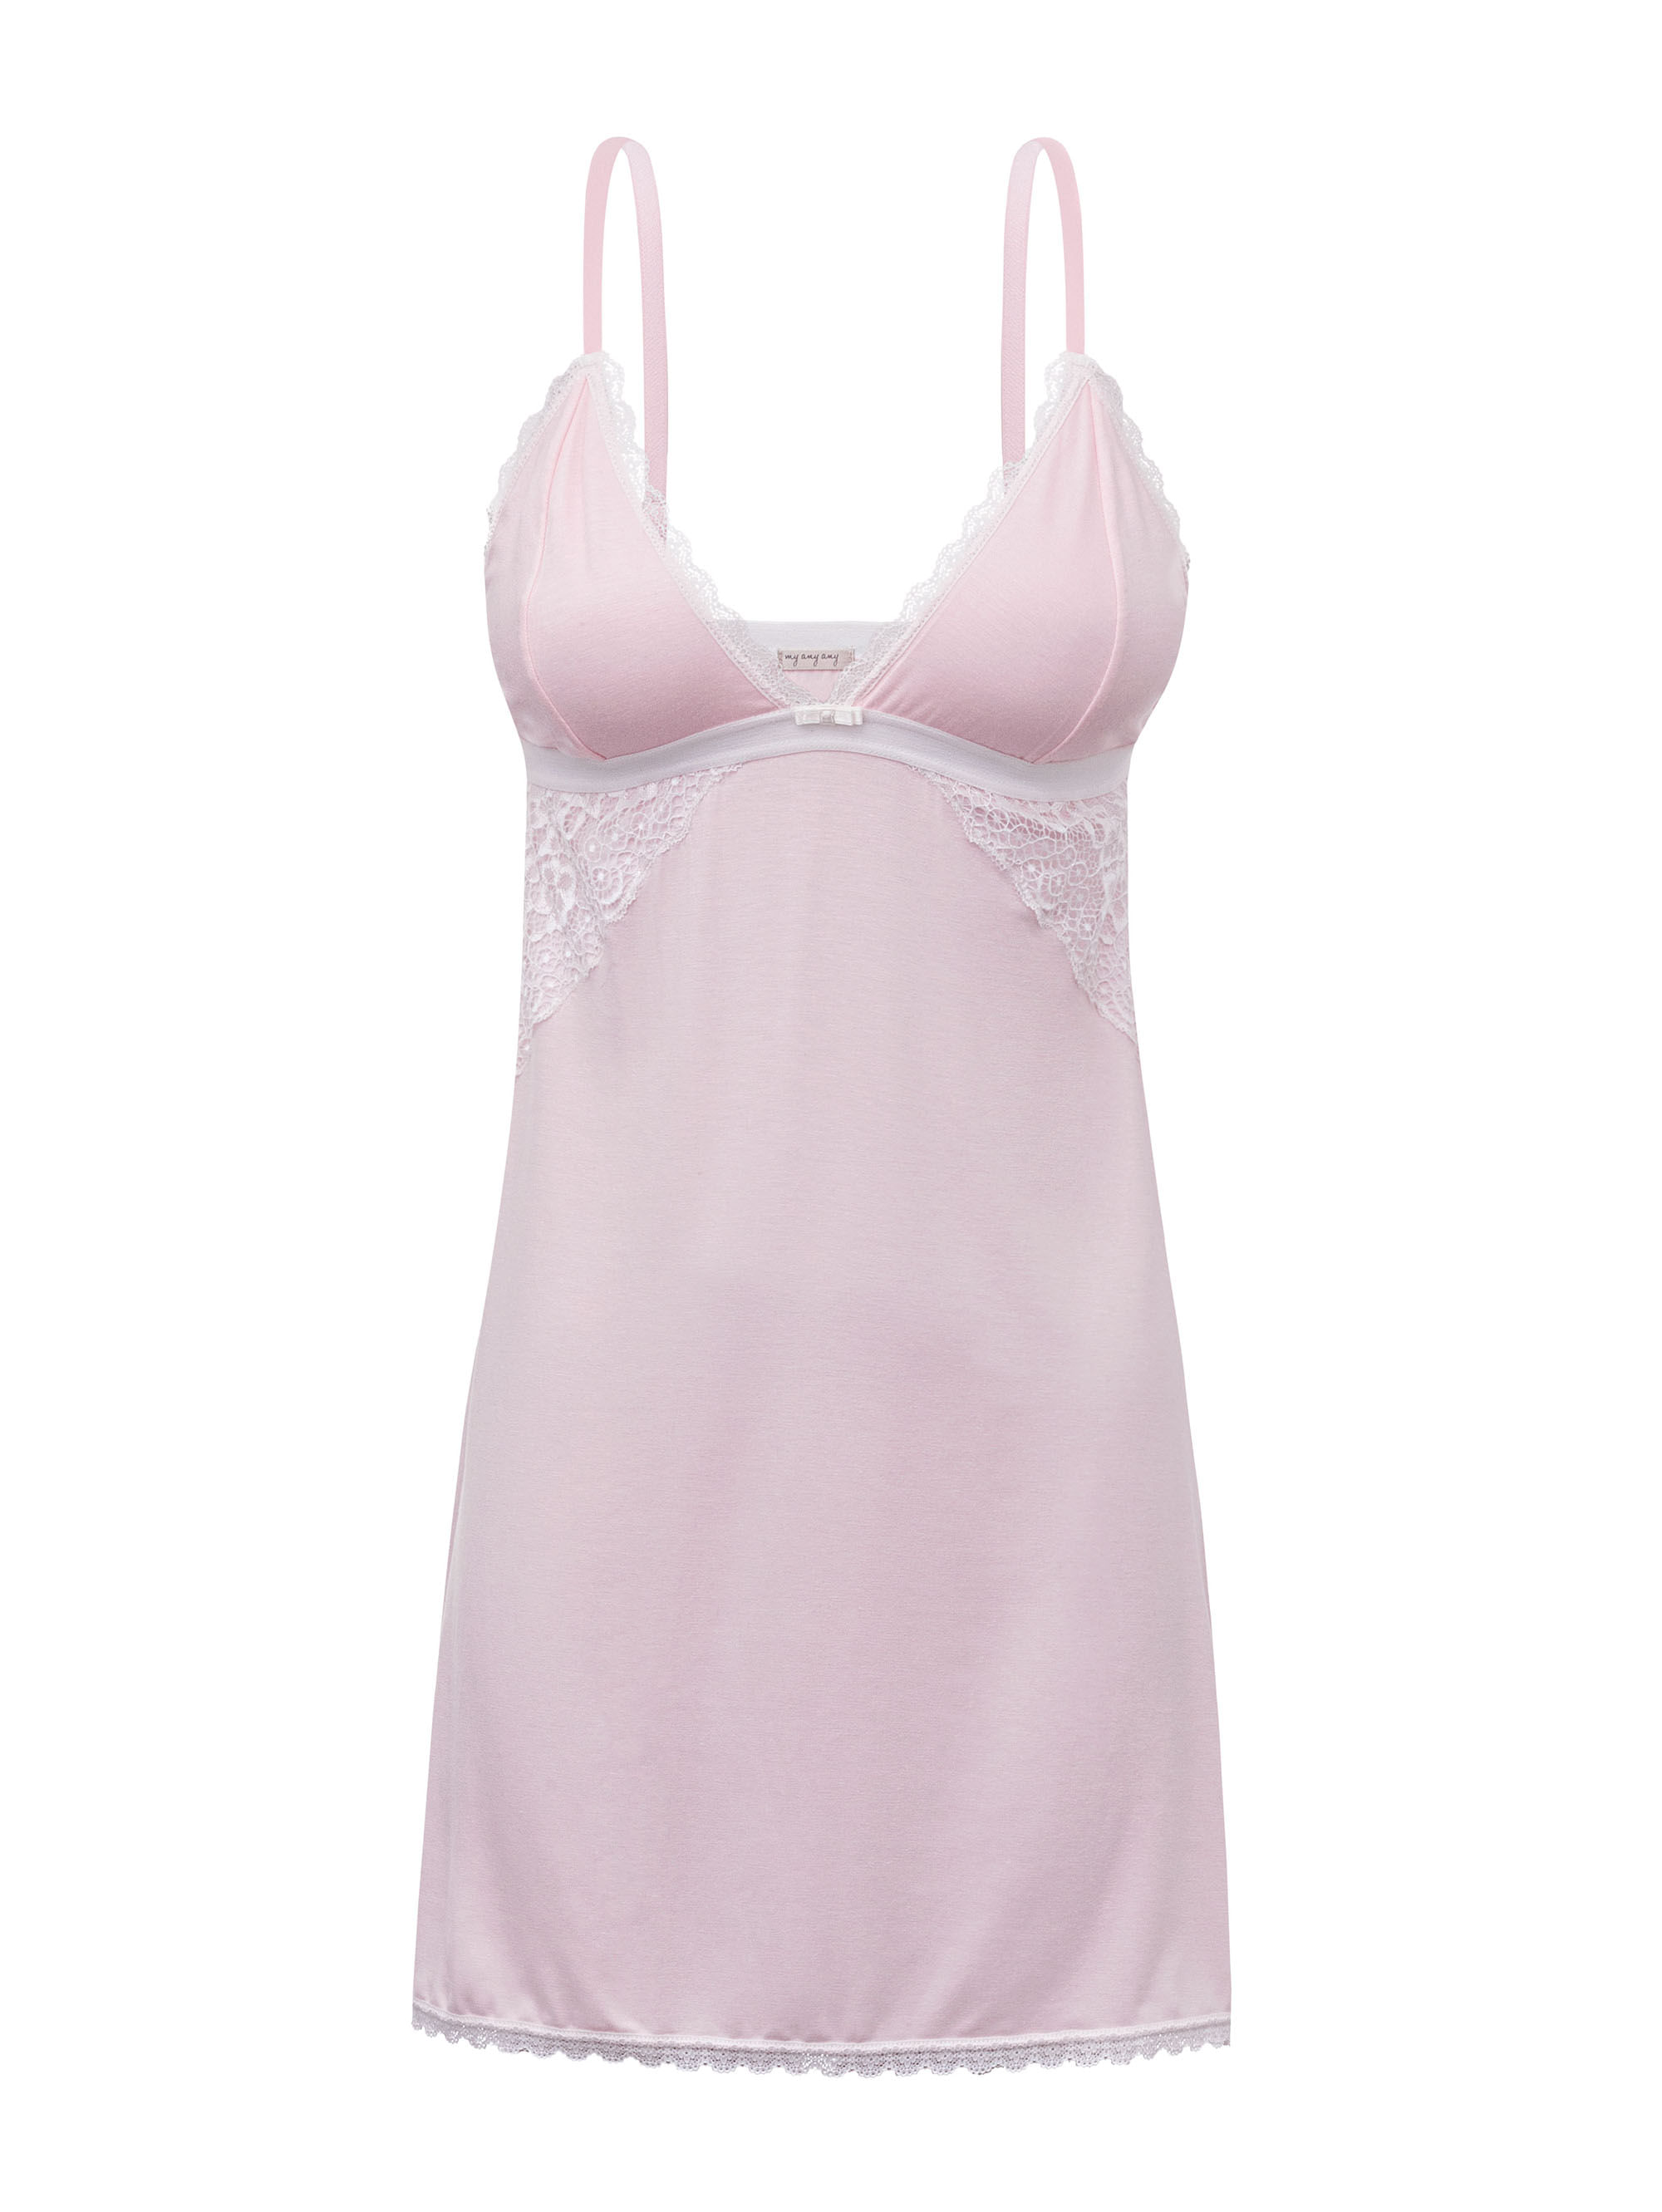 CAMISOLA-SWEET-PINK-01.01.1815